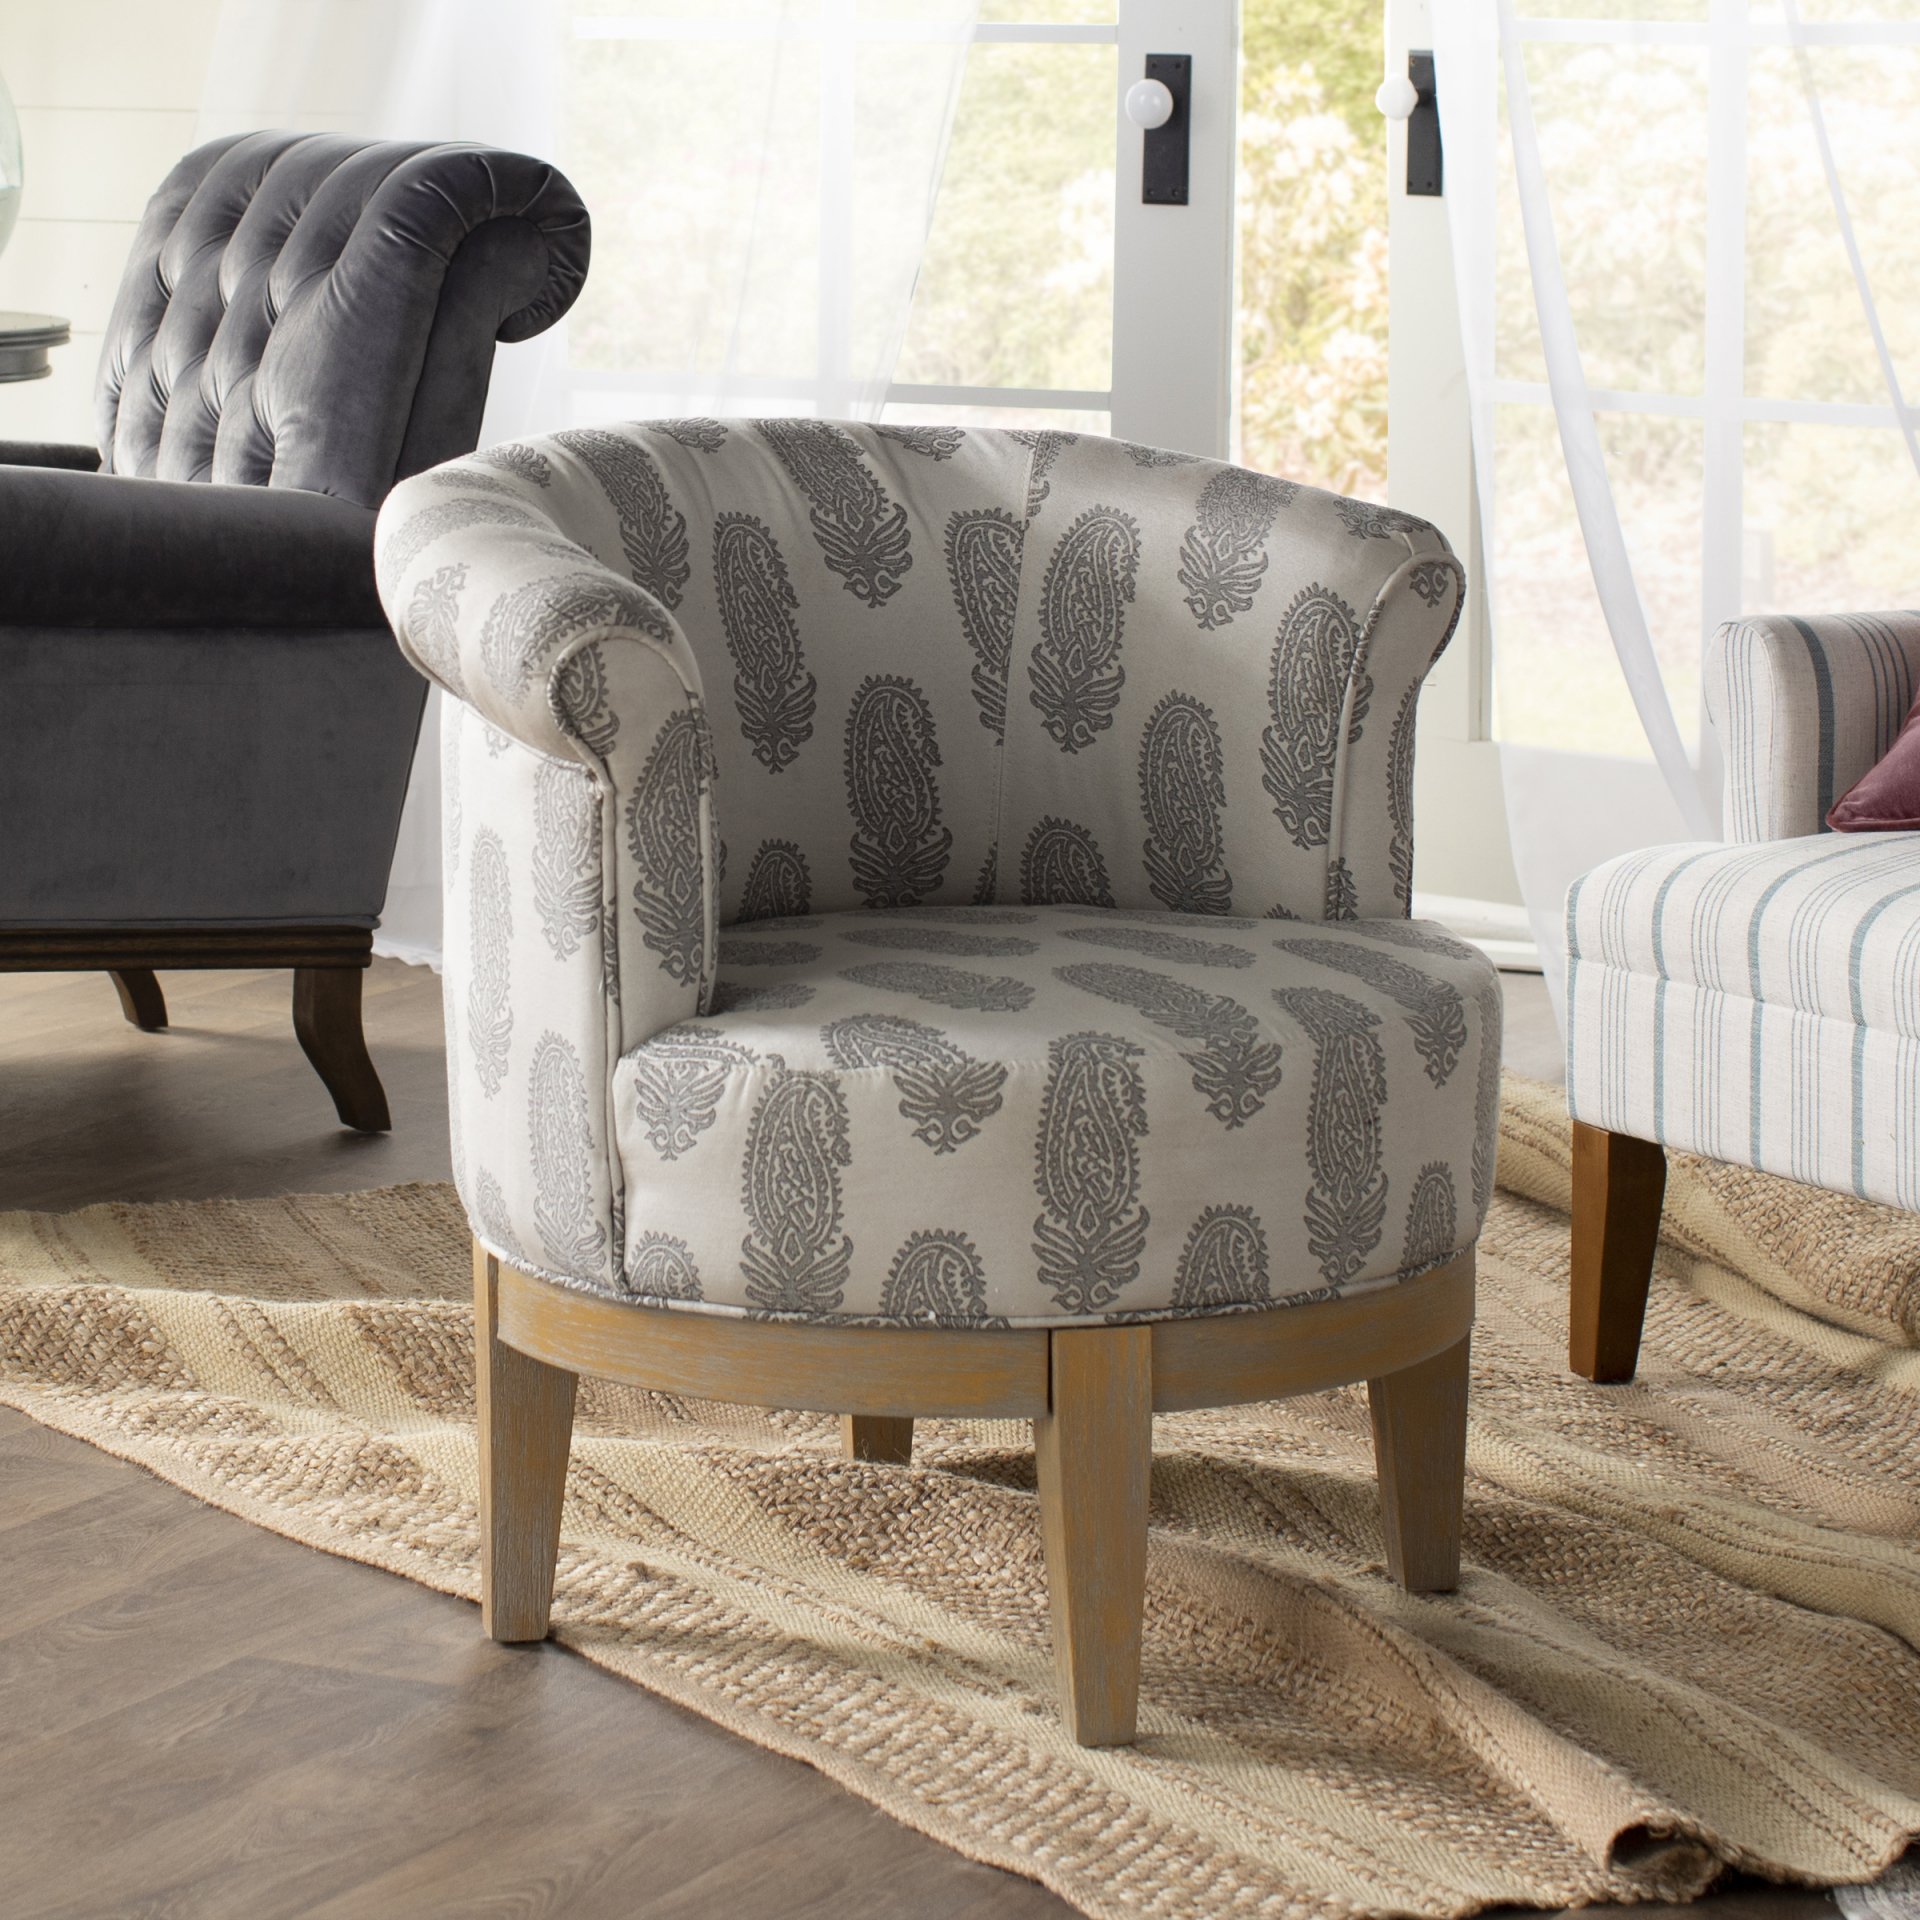 Accent Furniture | Joss & Main for Living Room Furniture Accent Chairs